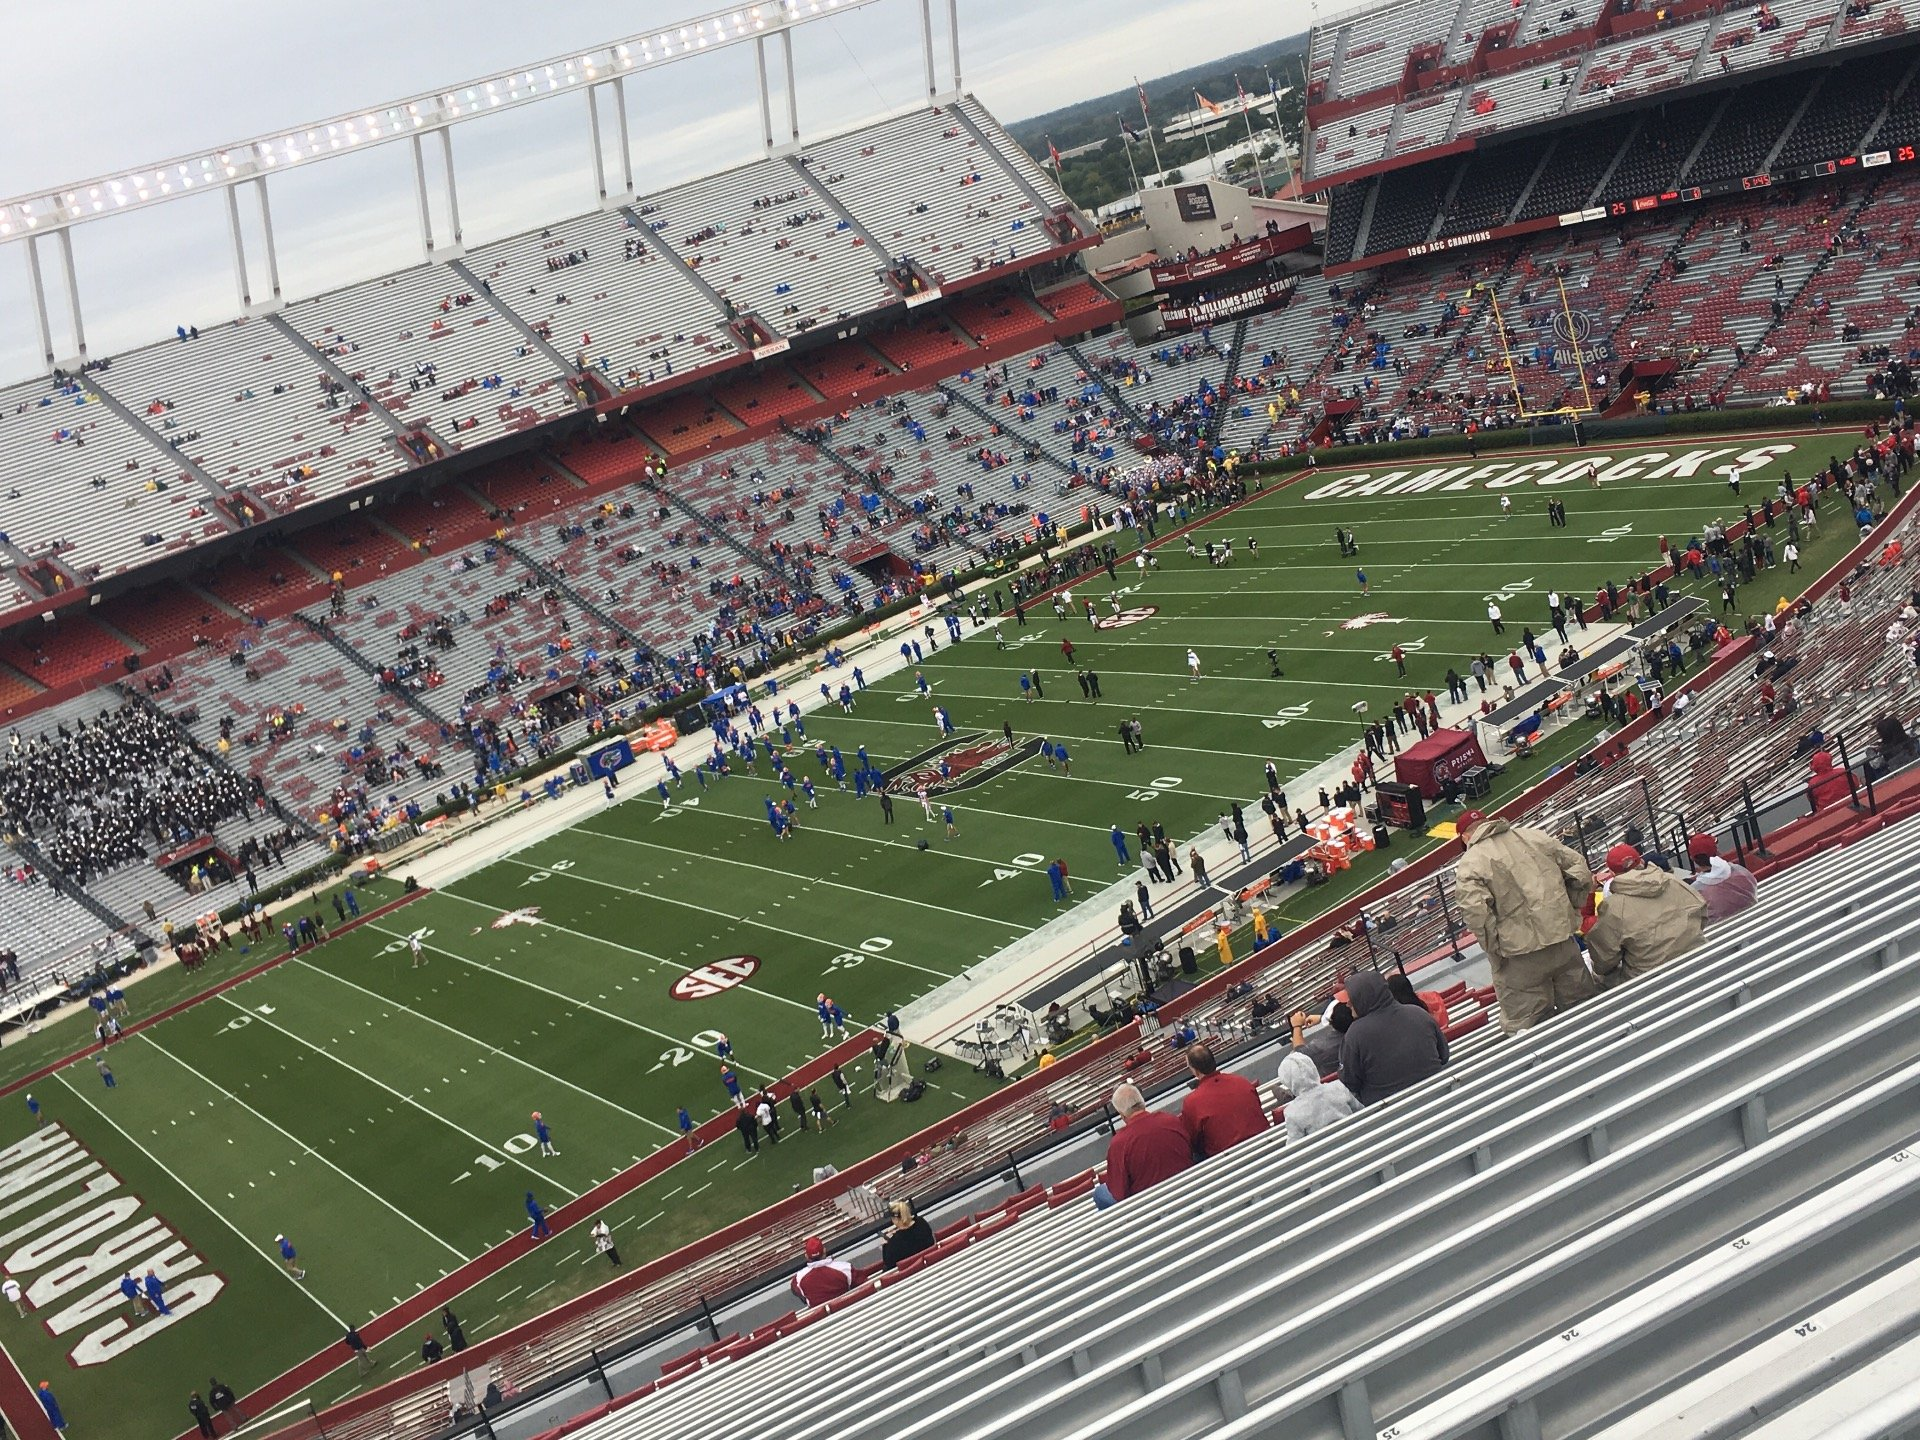 Williams-Brice Stadium Section 302 Row 27 Seat 27